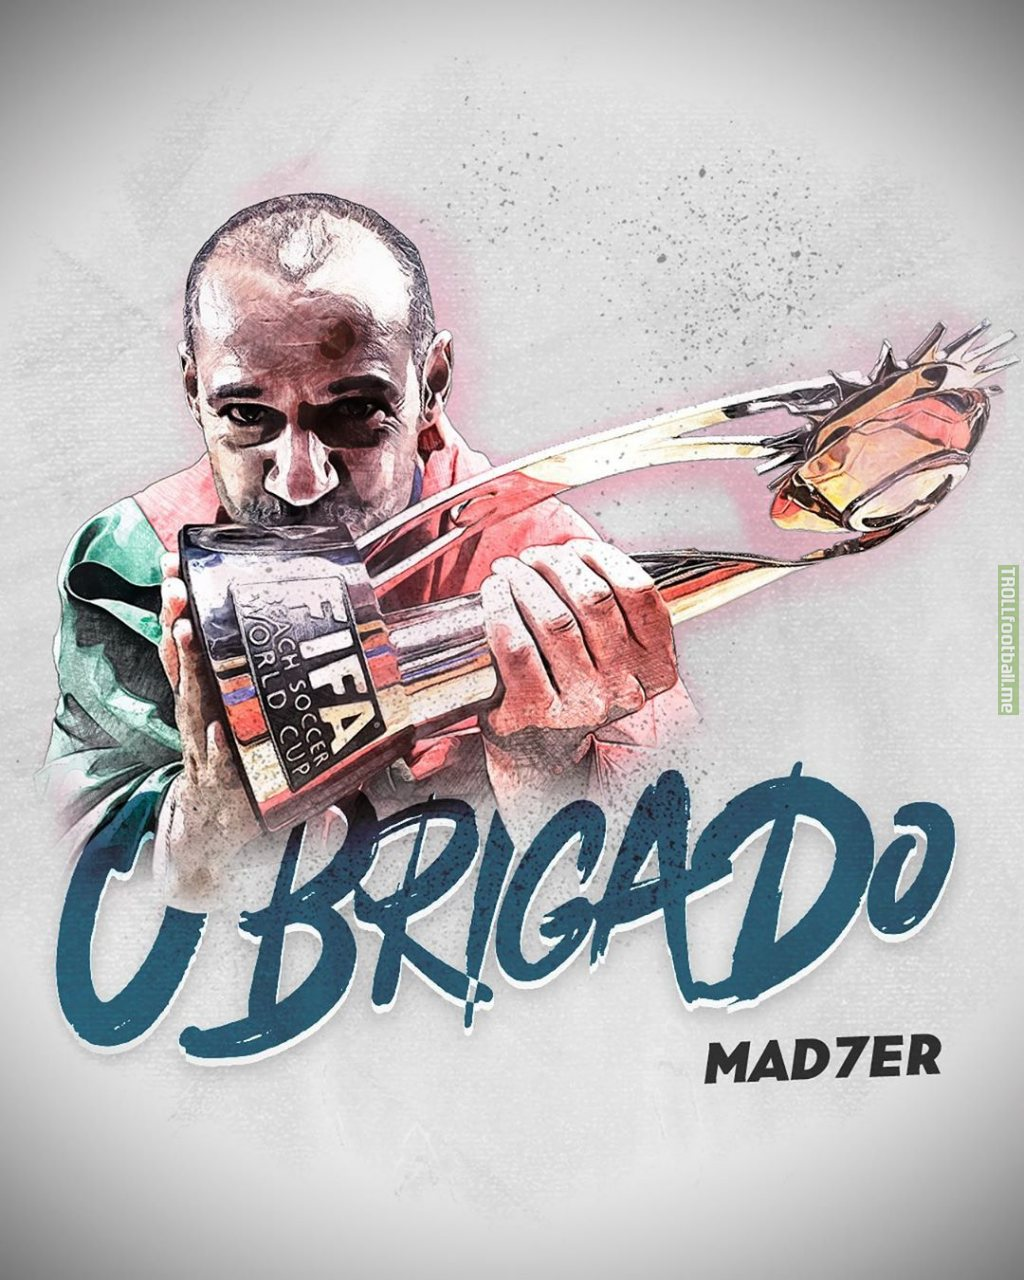 Madjer Retires from Beach Soccer After 583 Games and 1084 Goals for Portugal